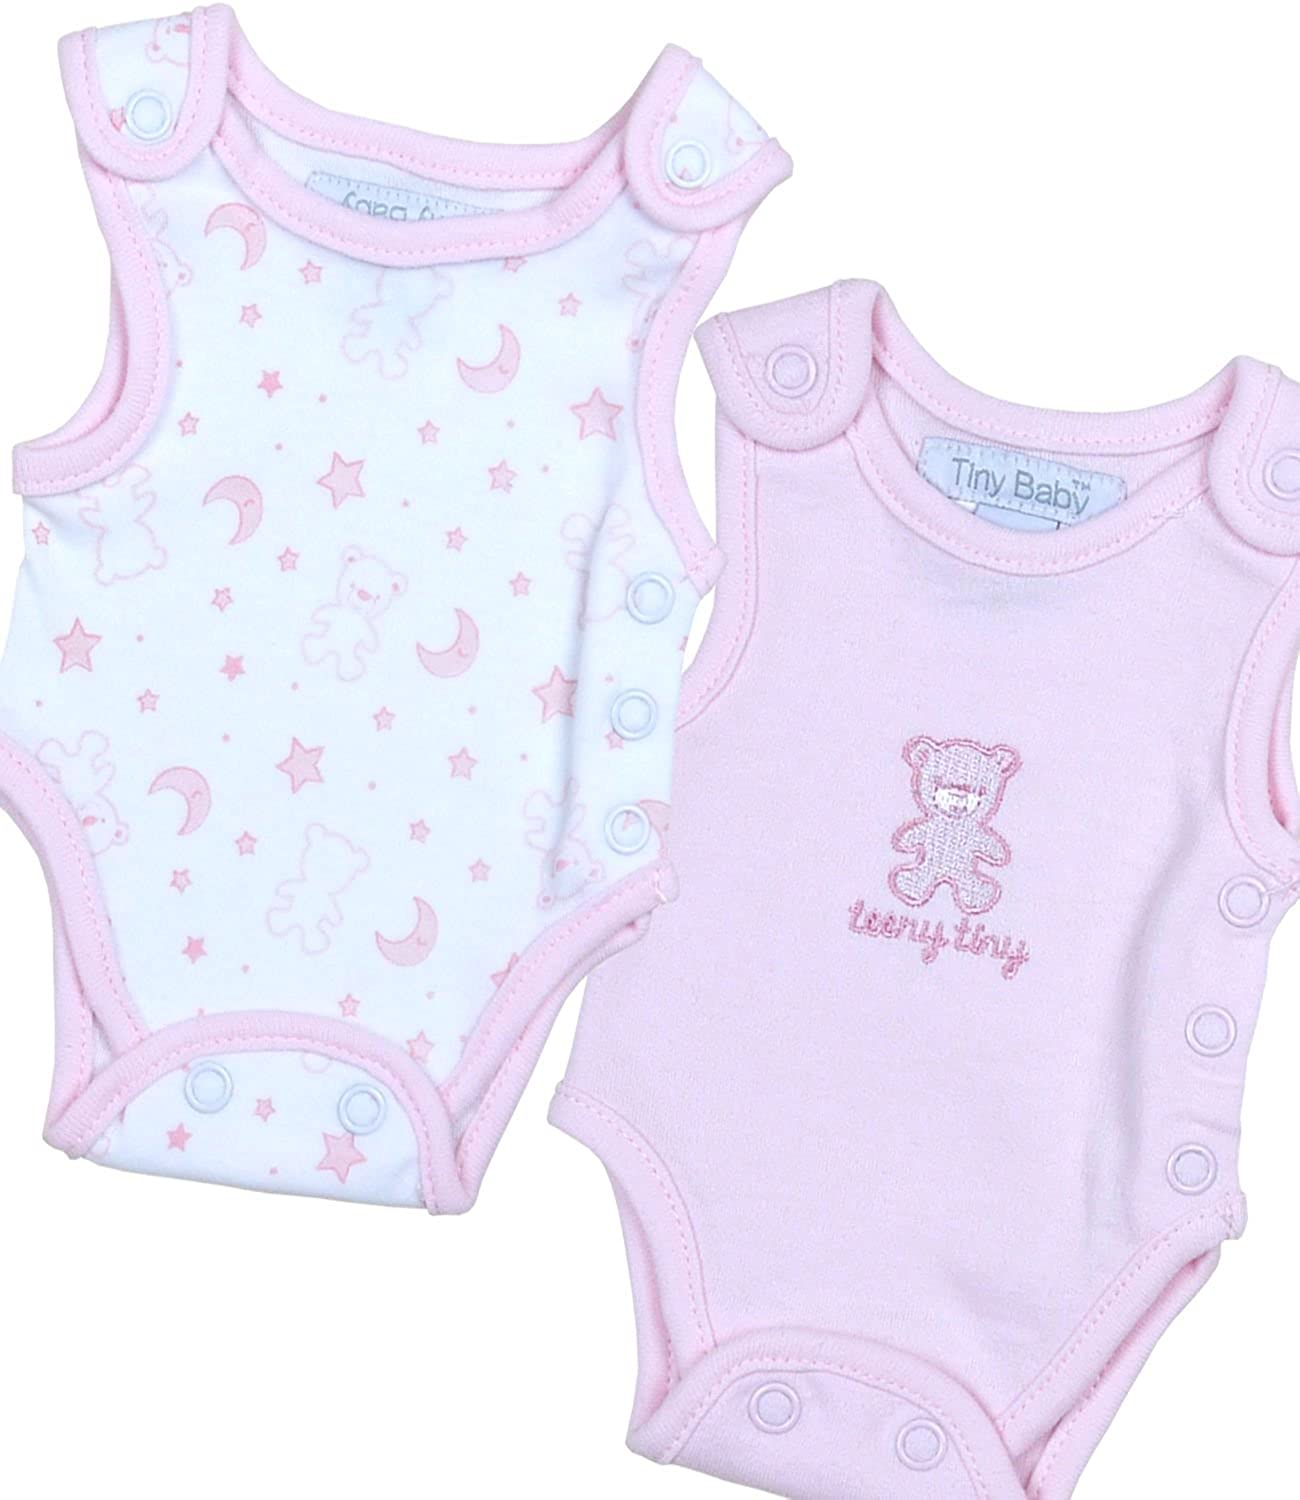 41e5a0259821 BabyPrem Preemie Pack of 2 Tiny Creepers Baby Boy Girl Cotton Teddy ...